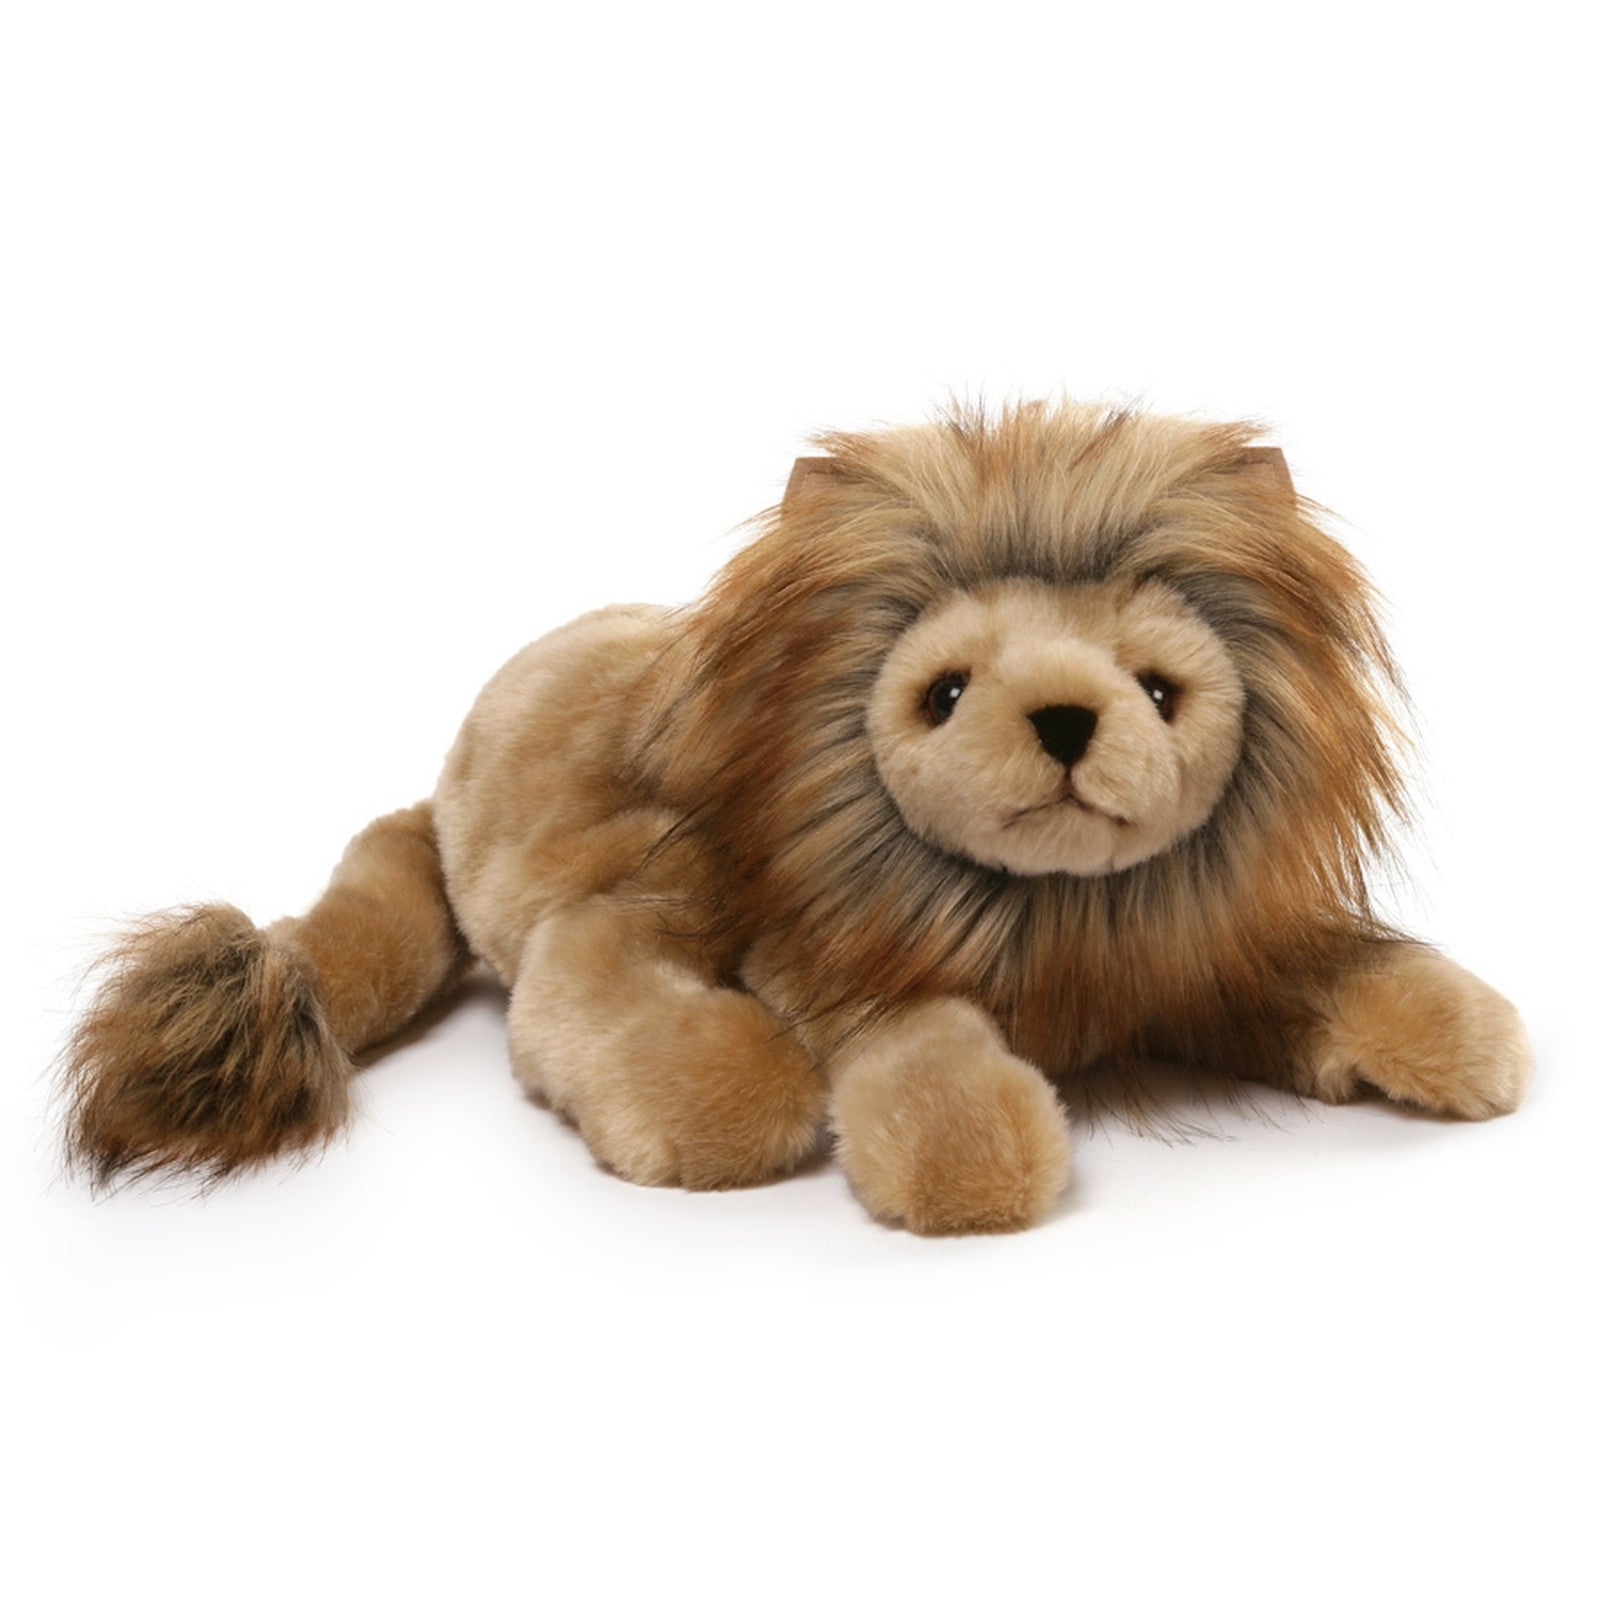 "Gund - Posh Collection - Roary 13"" Lion"